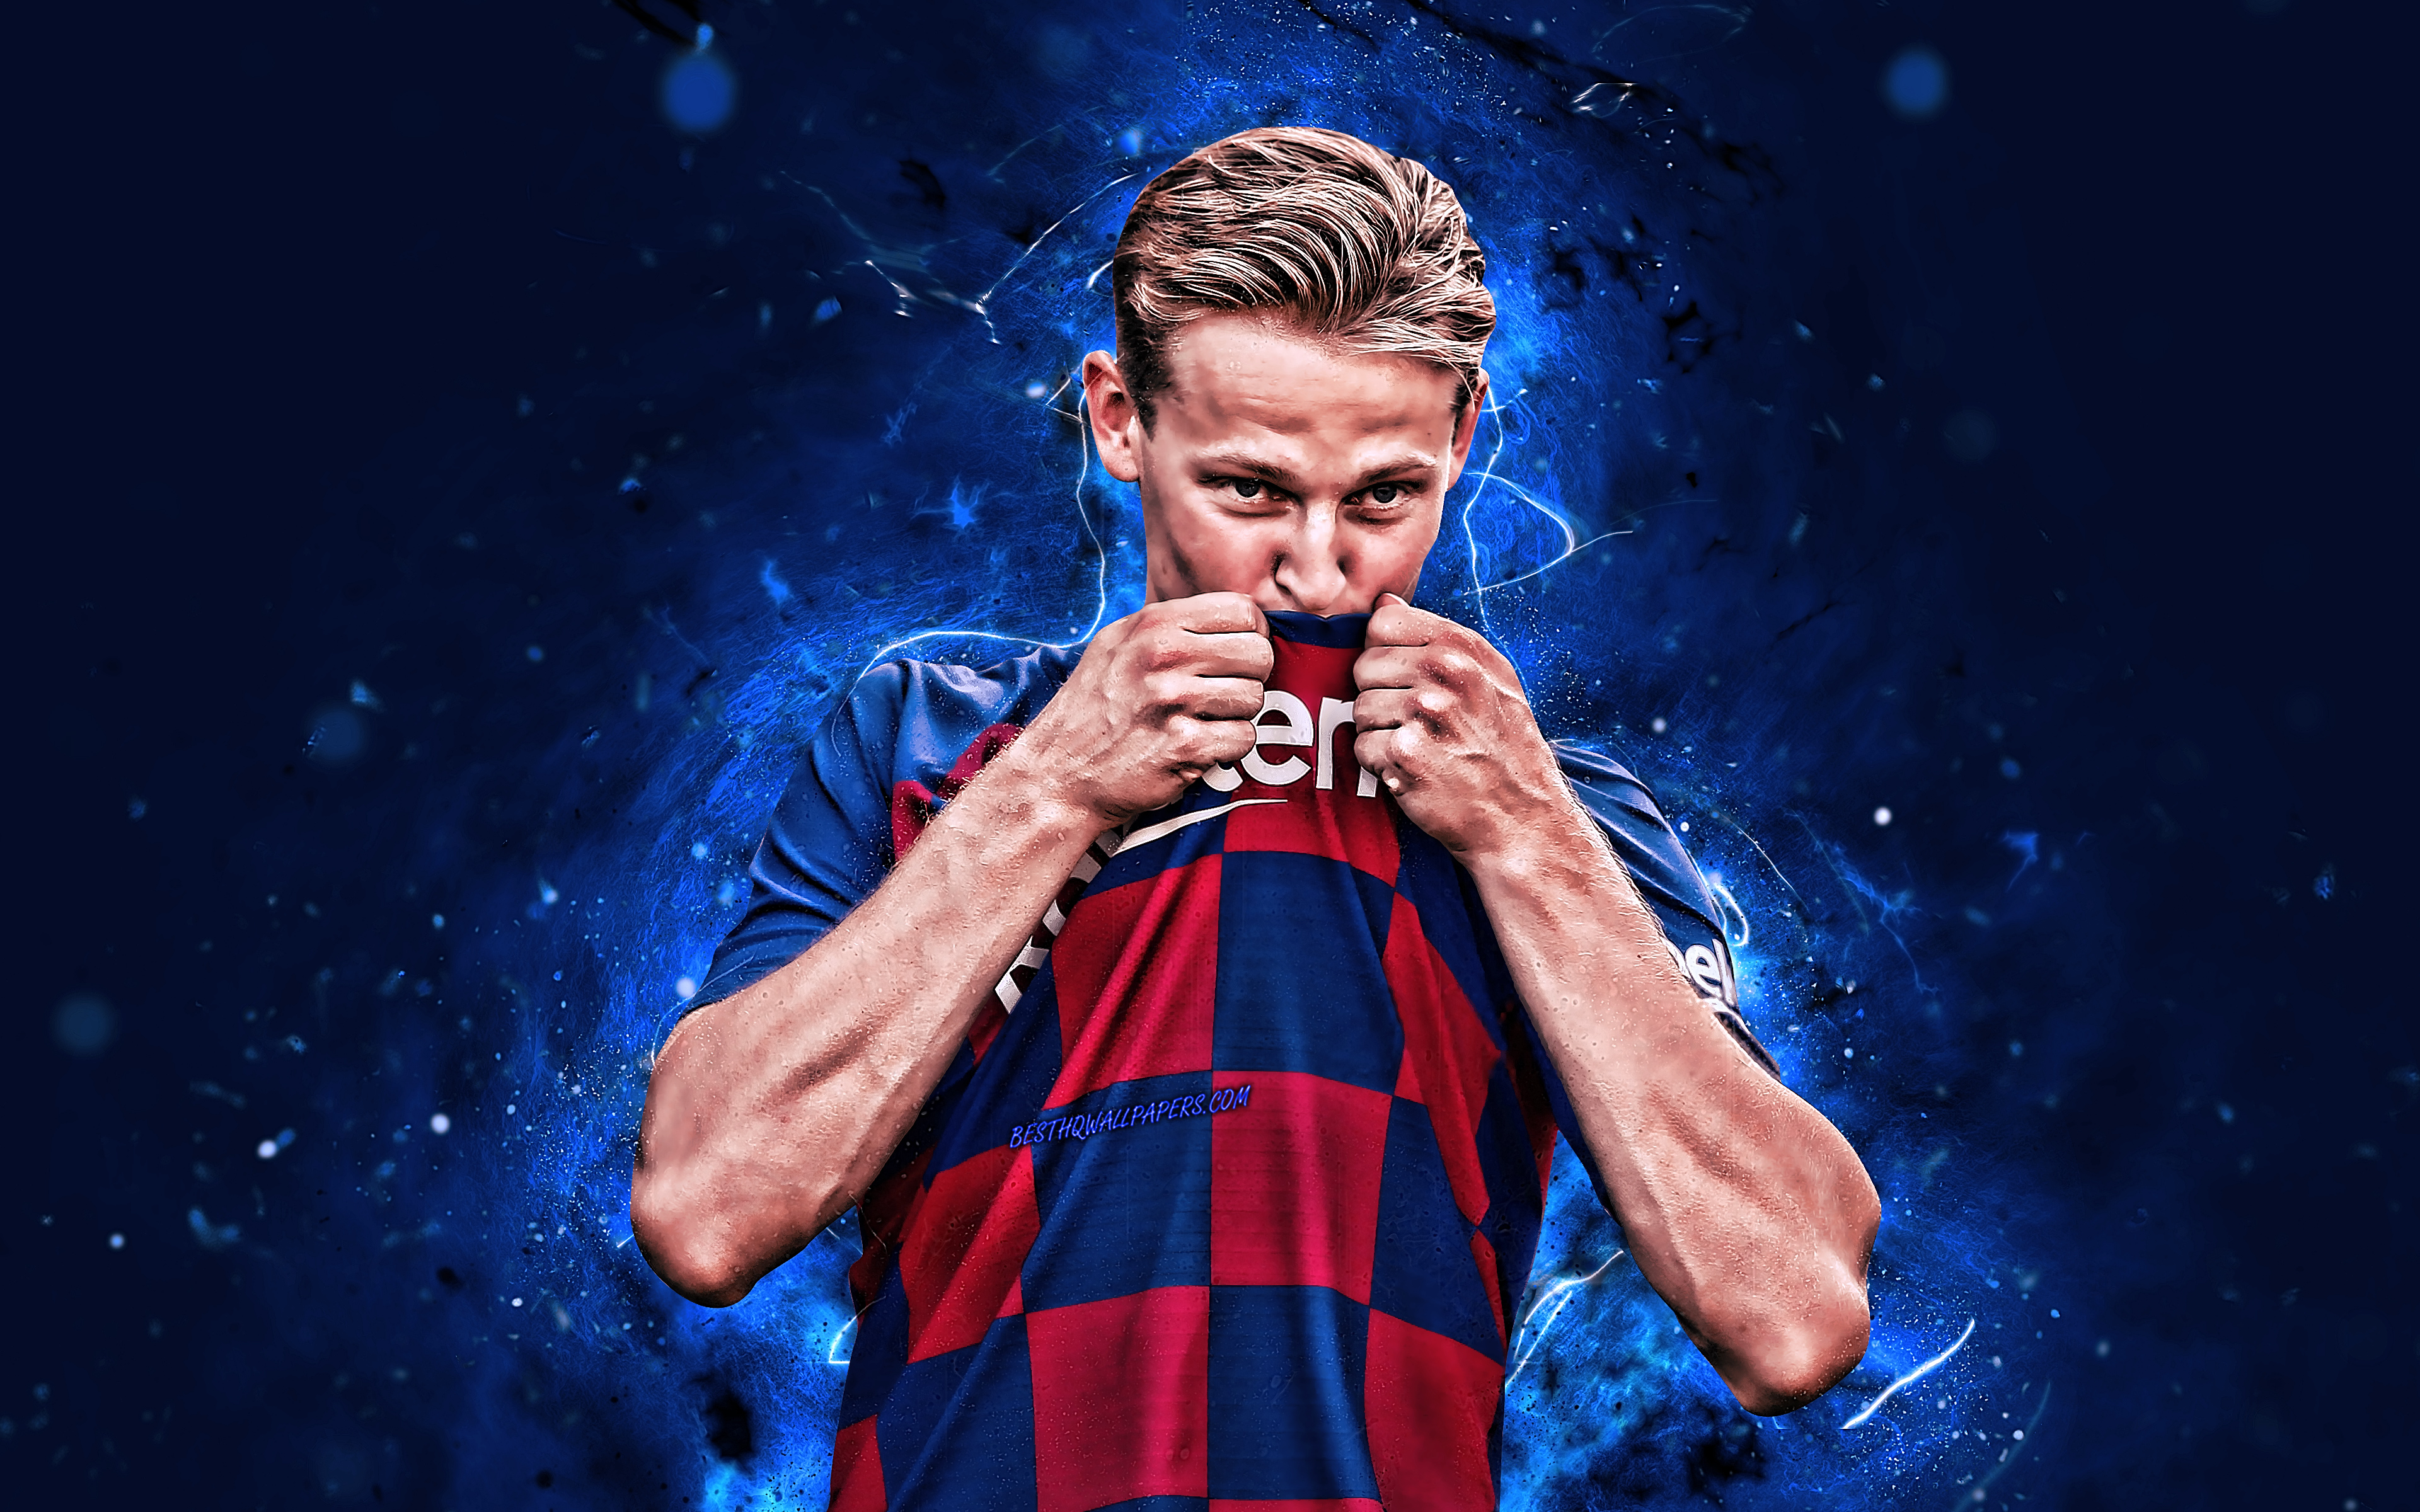 4k, Frenkie de Jong, Barcelona FC, 2019, dutch footballers, LaLiga, Midfielder, Barca, De Jong, La Liga, Spain, FCB, football, neon lights, soccer, Frenkie de Jong 4K